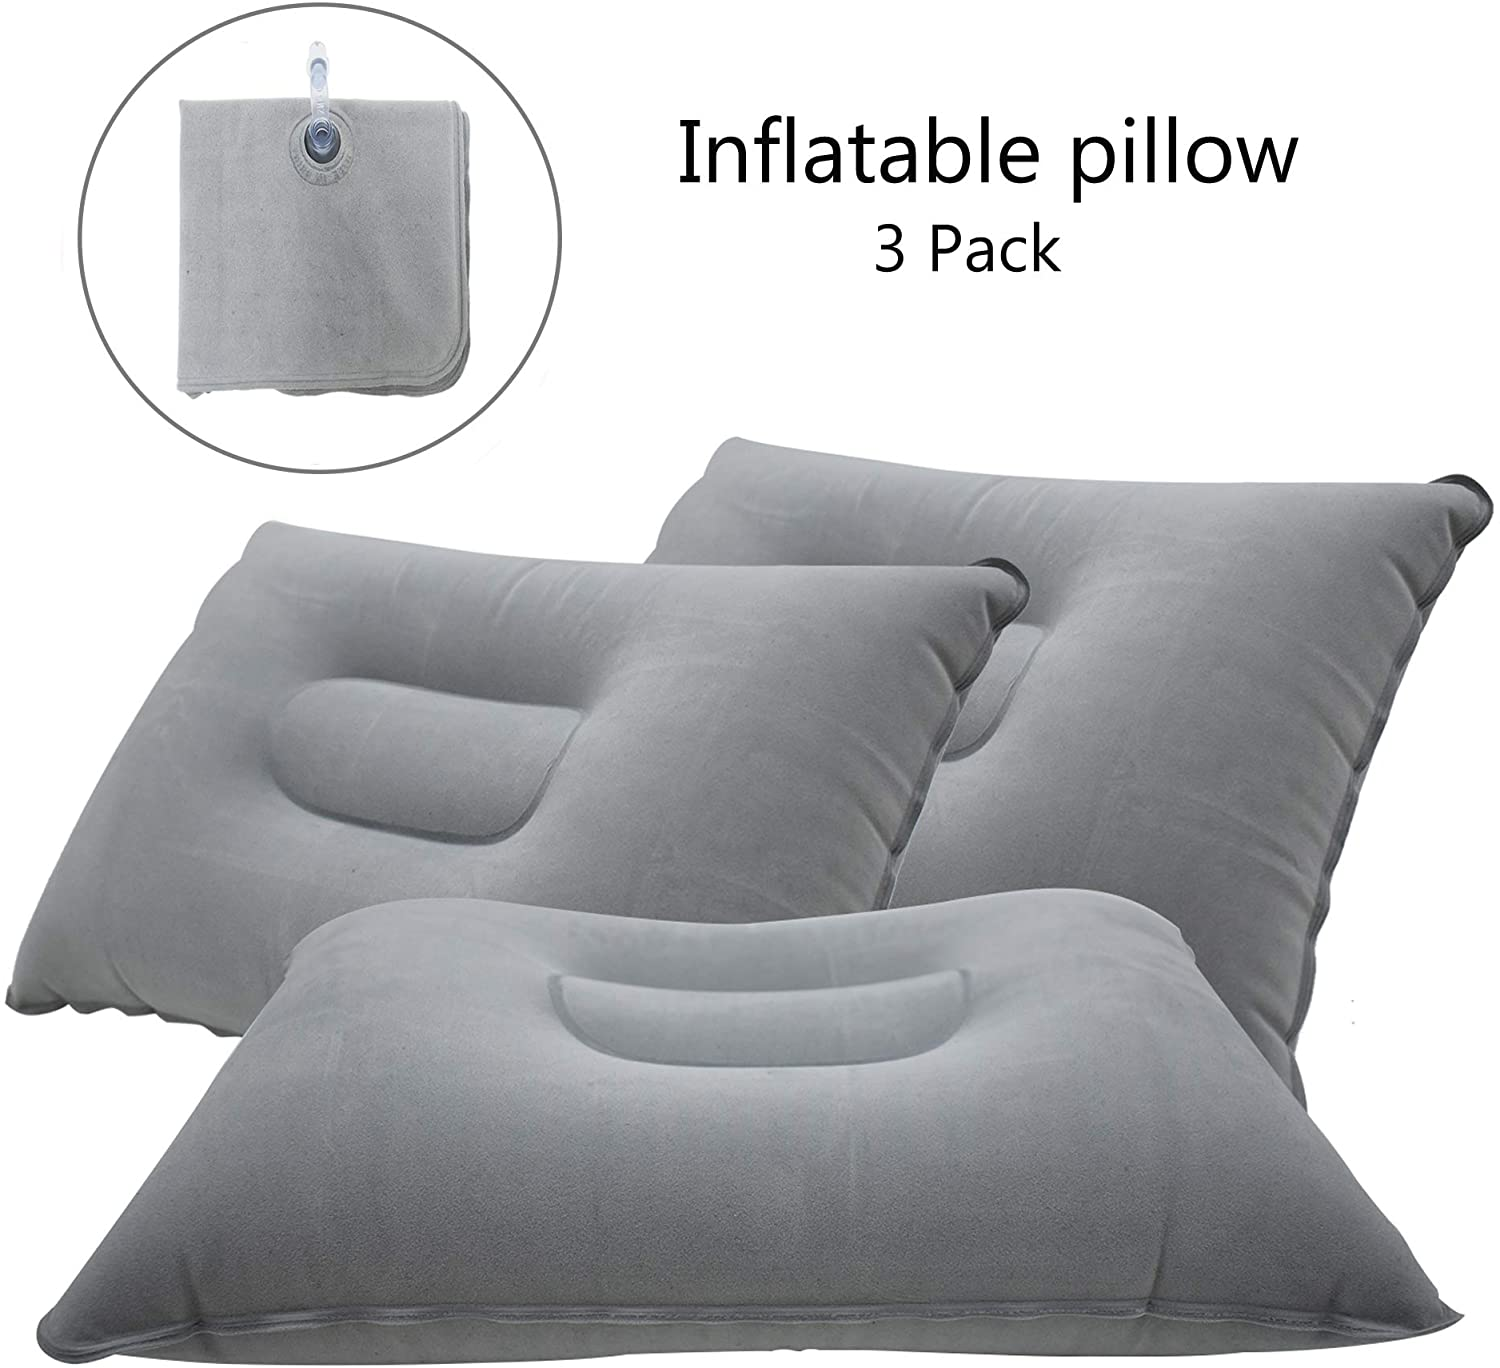 Camping Pillow Ultralight Inflatable Pillow for Neck Lumber Support Backpacking Hiking 2 Pack Gray Ultralight Inflatable Pillow Inflatable Pillow Washable Travel Air Pillows for Camping